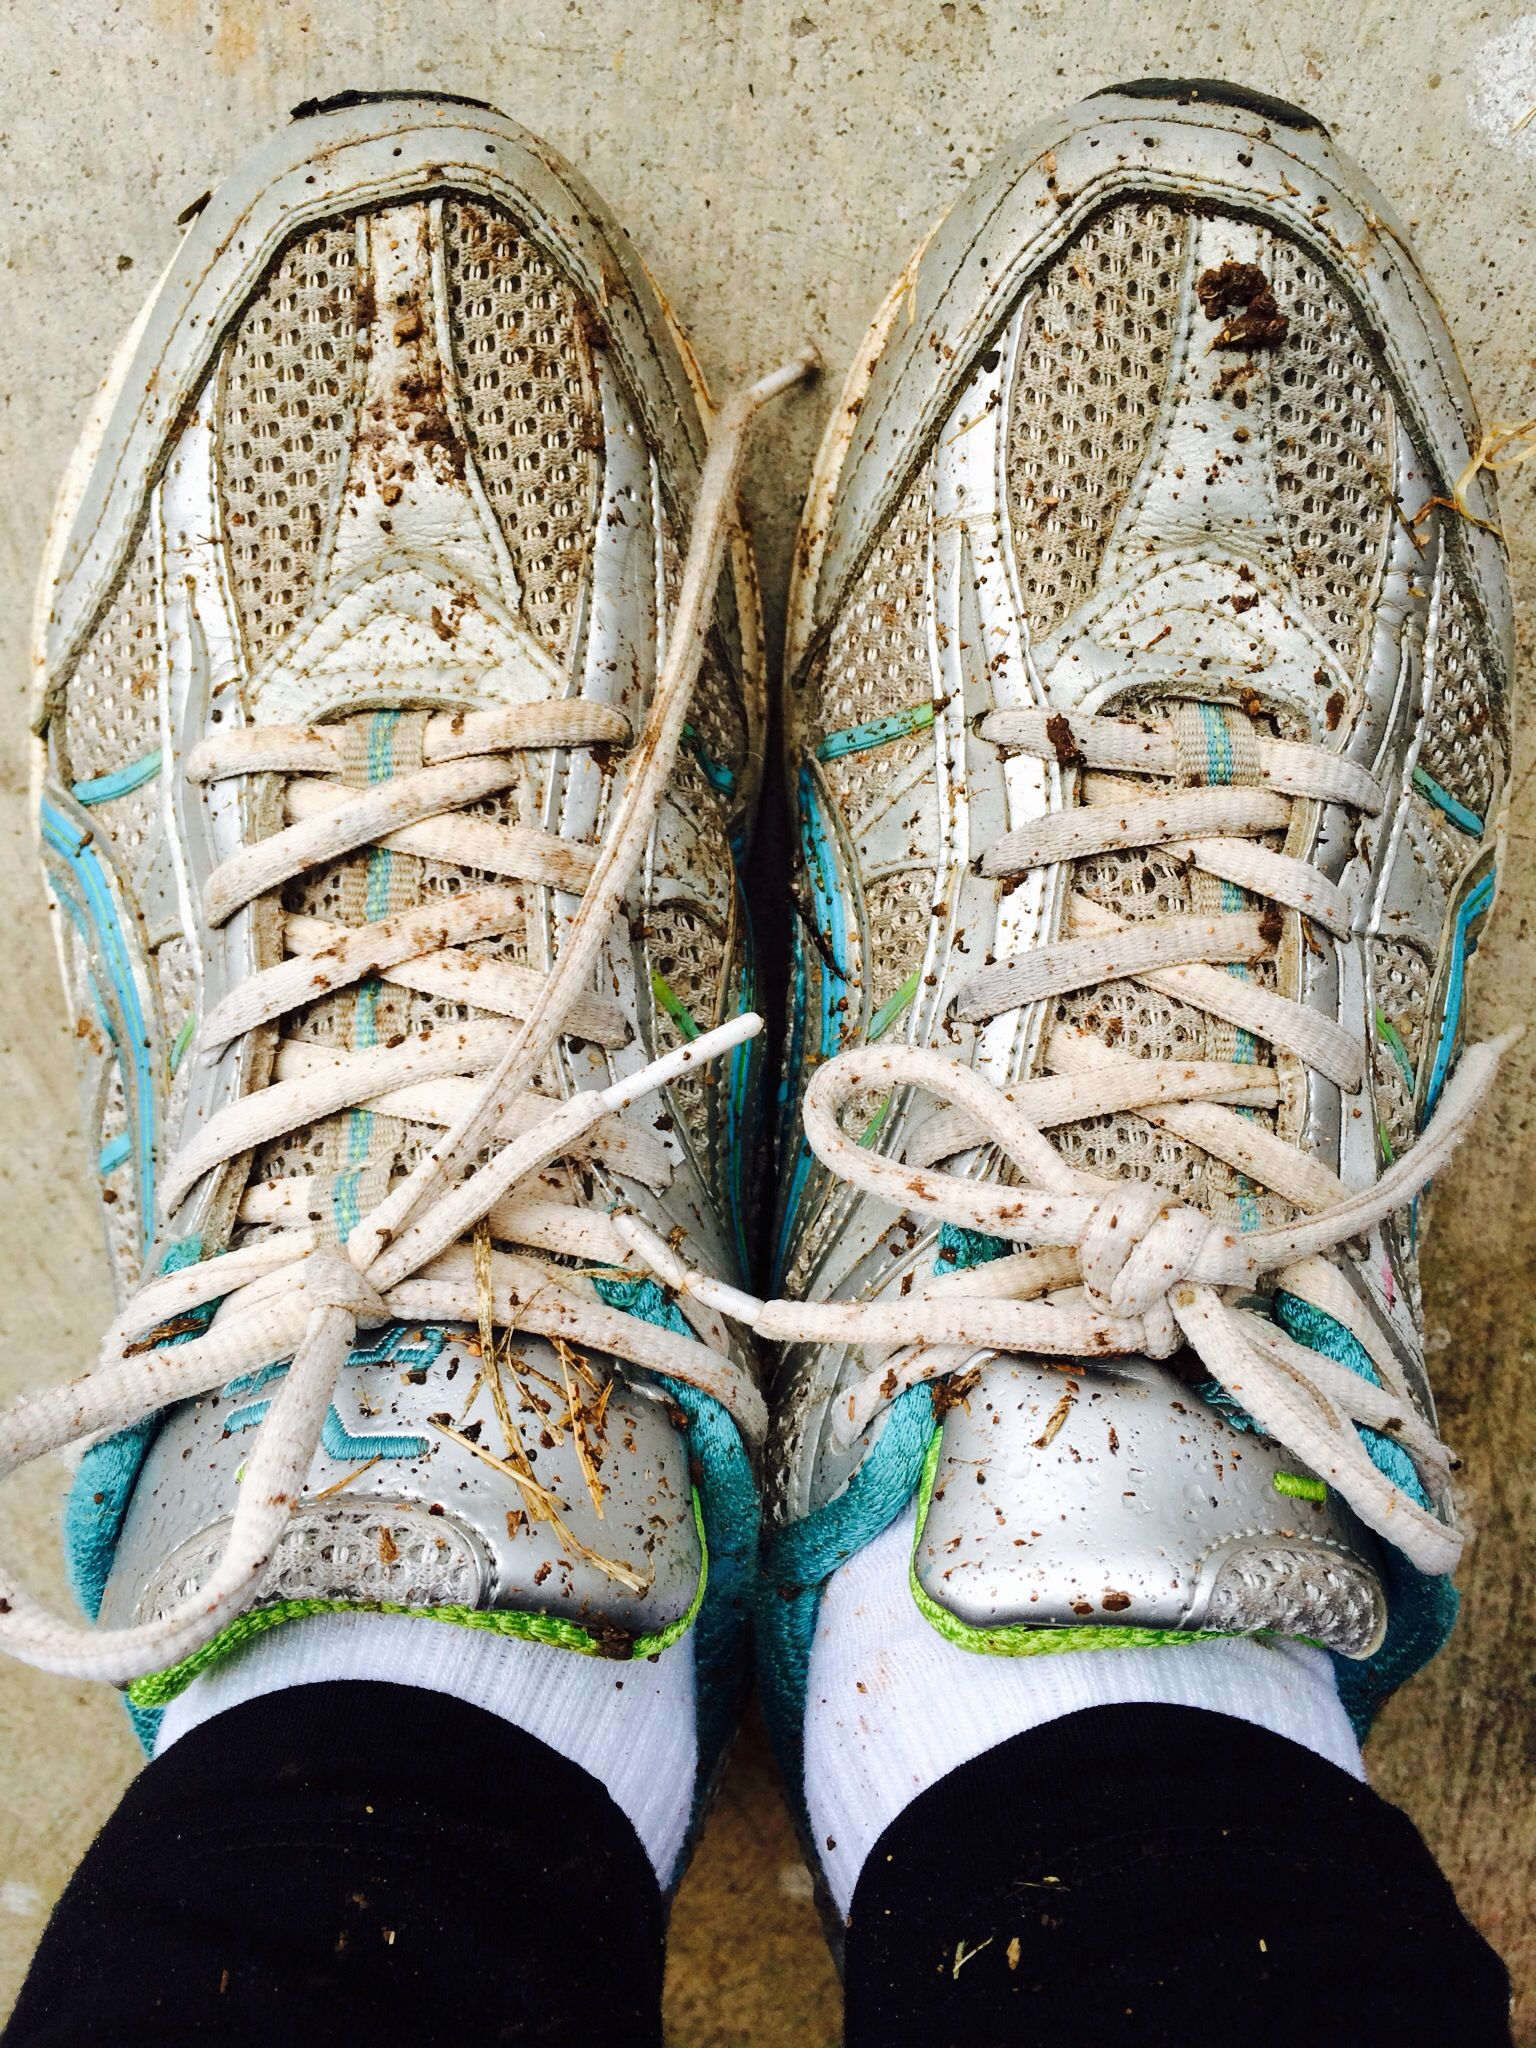 Get your sneakers muddy. get off your butt in 2019